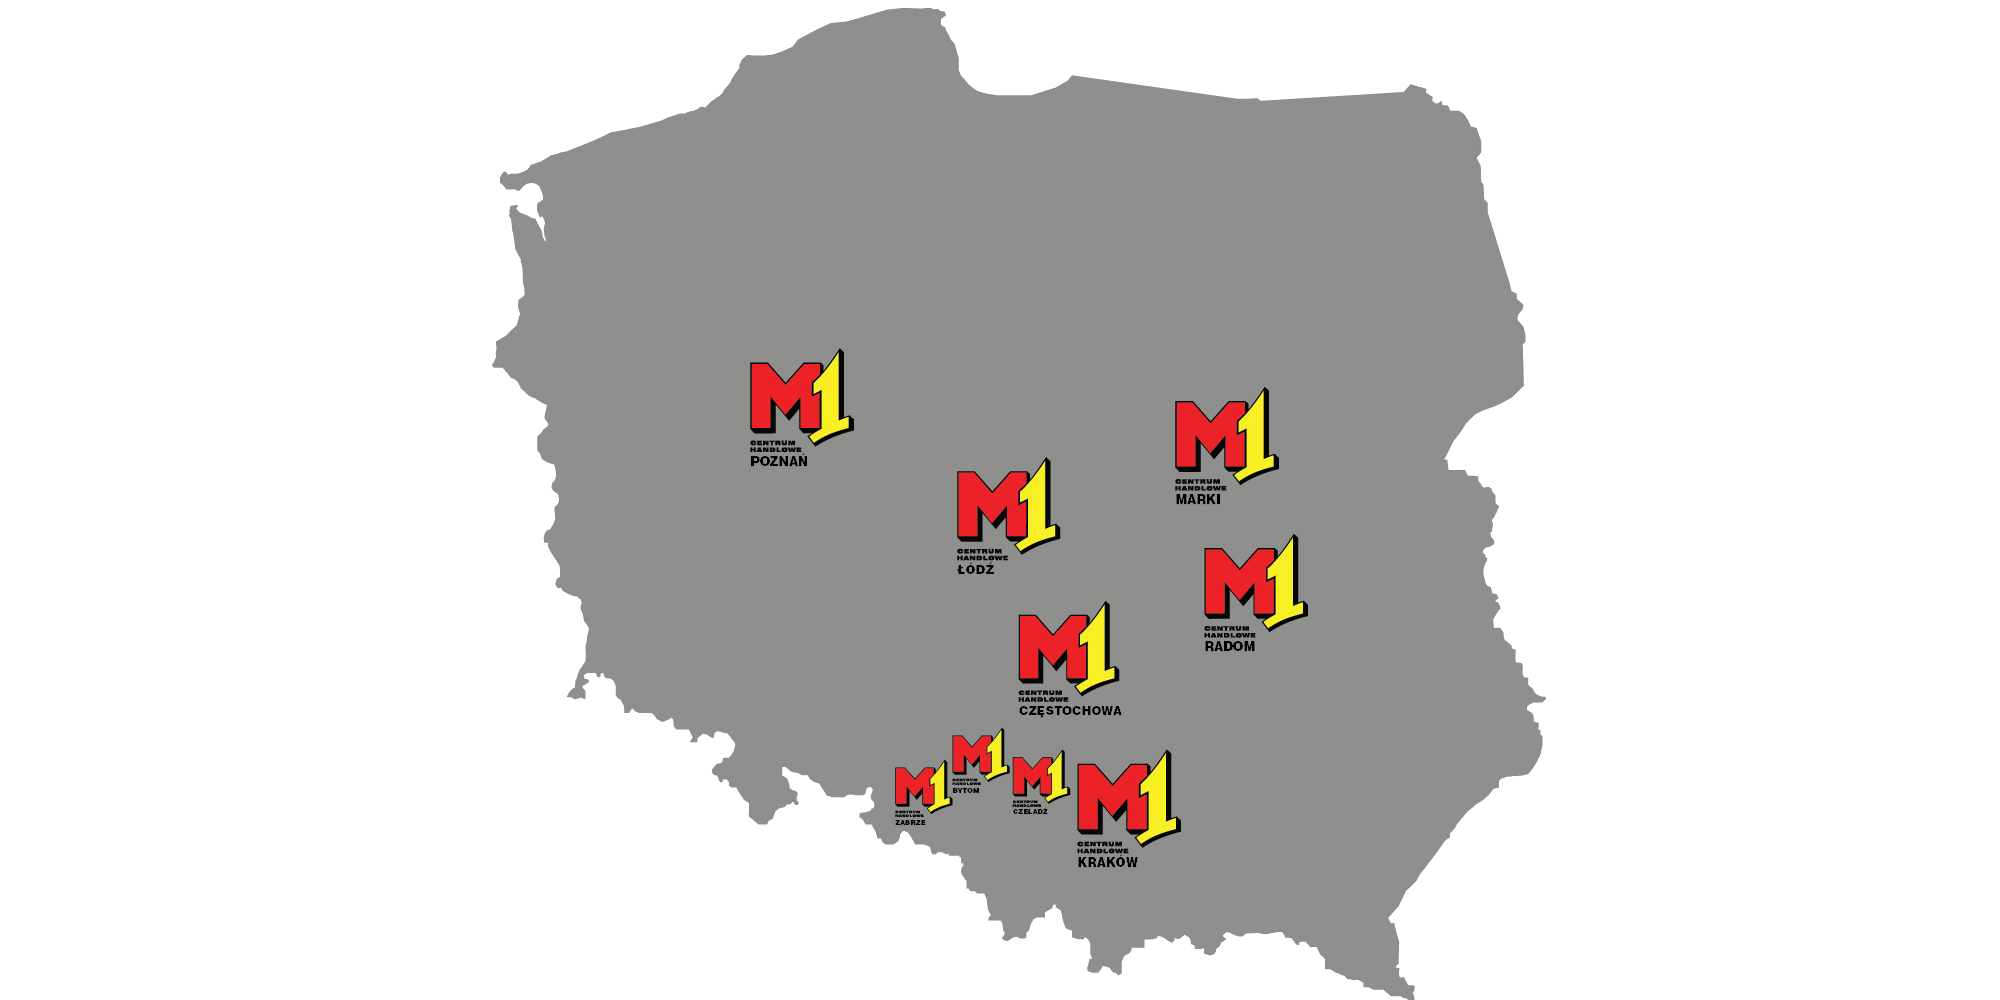 M1 locations map Poland